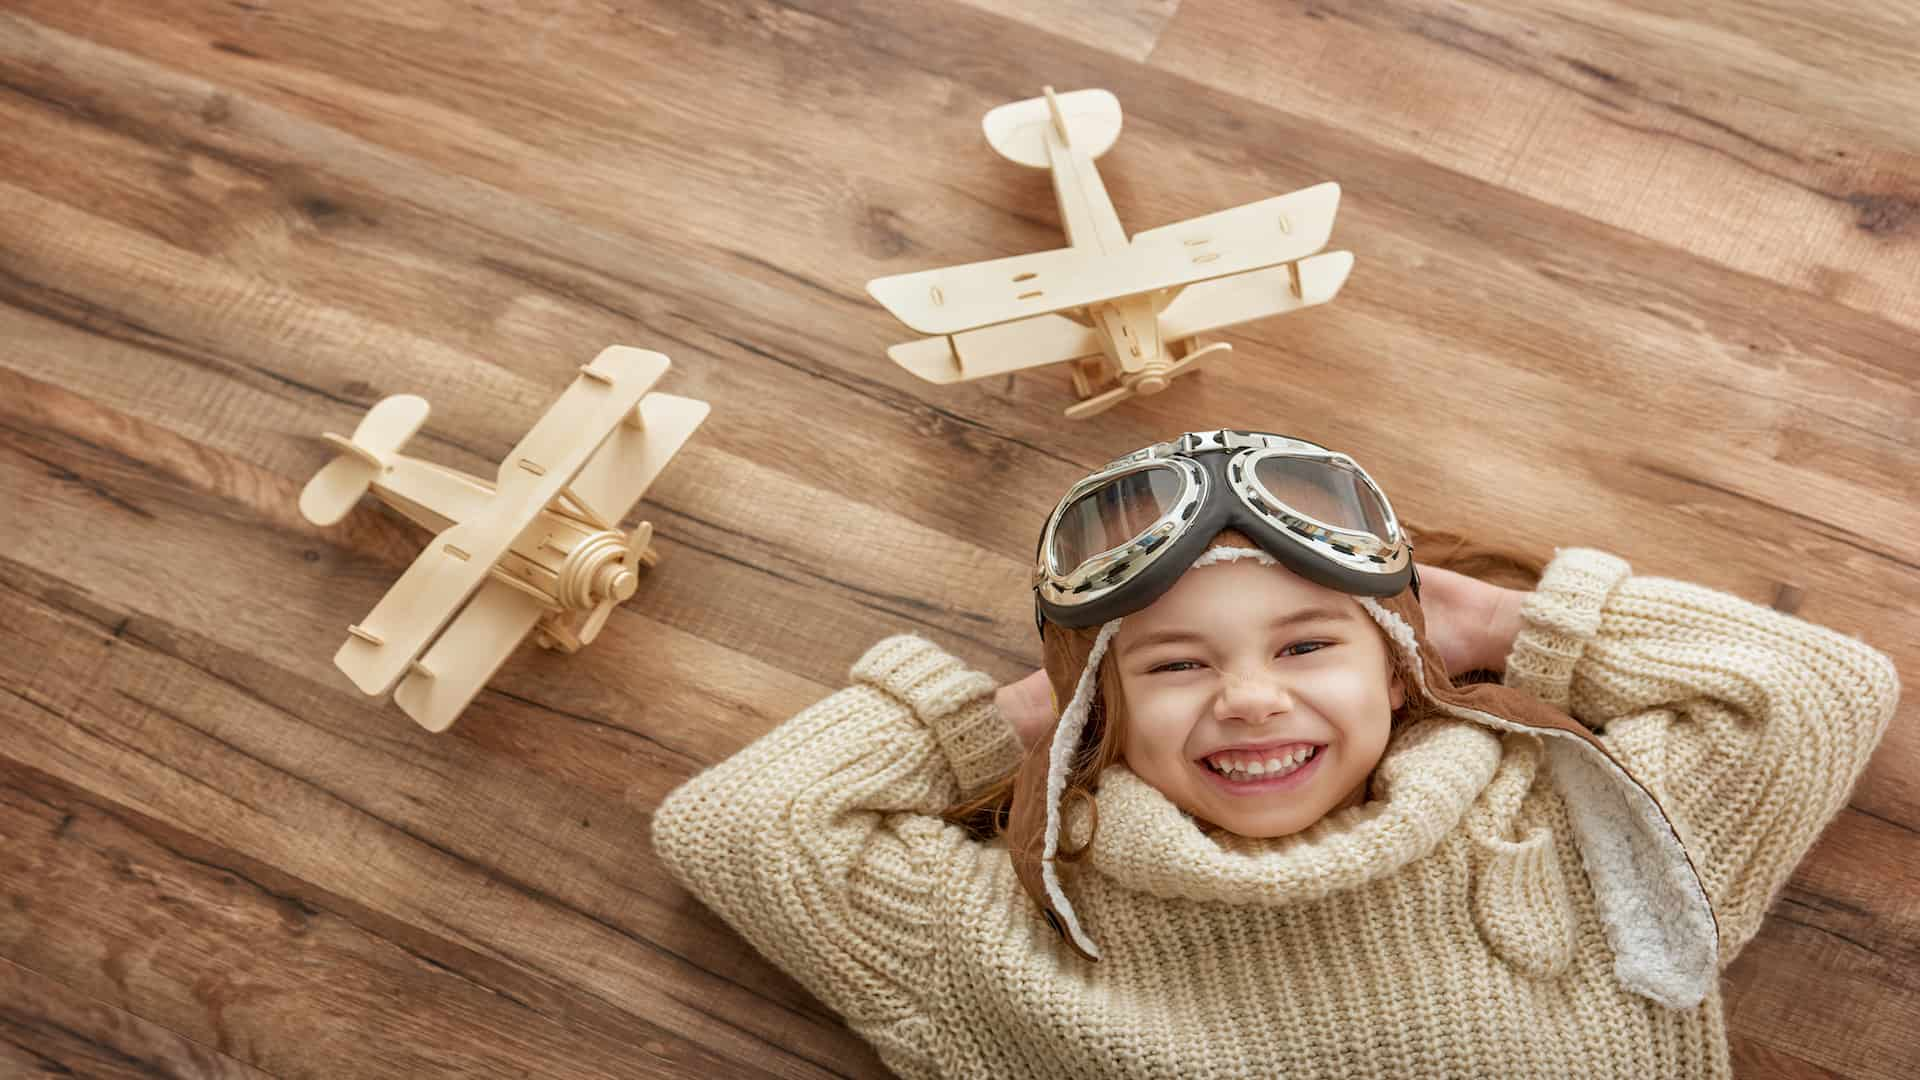 Best Wooden Toys 2021: Shopping Guide & Review